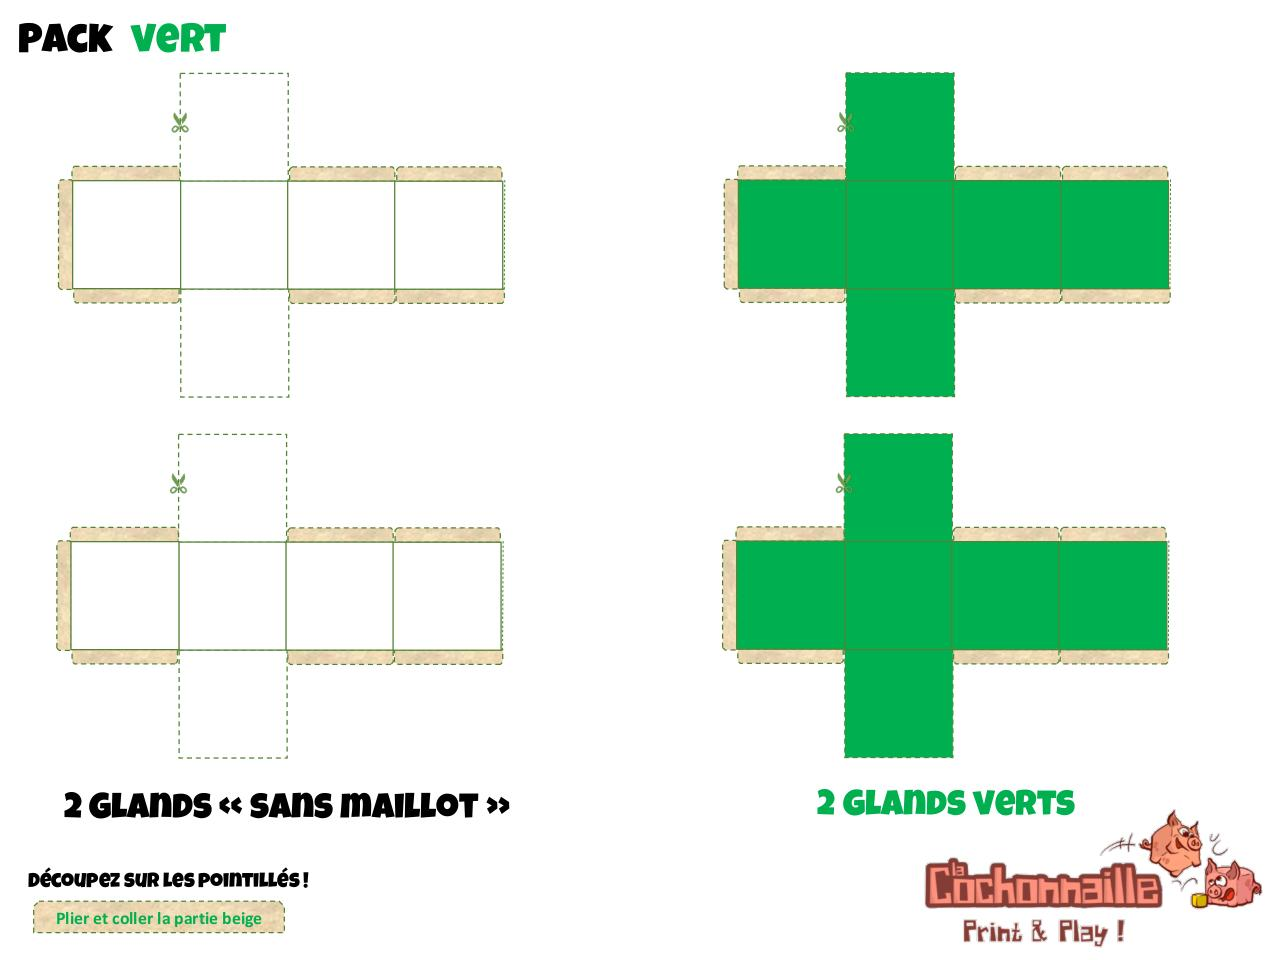 print and play cochonnaille pack vert.pdf - page 3/9